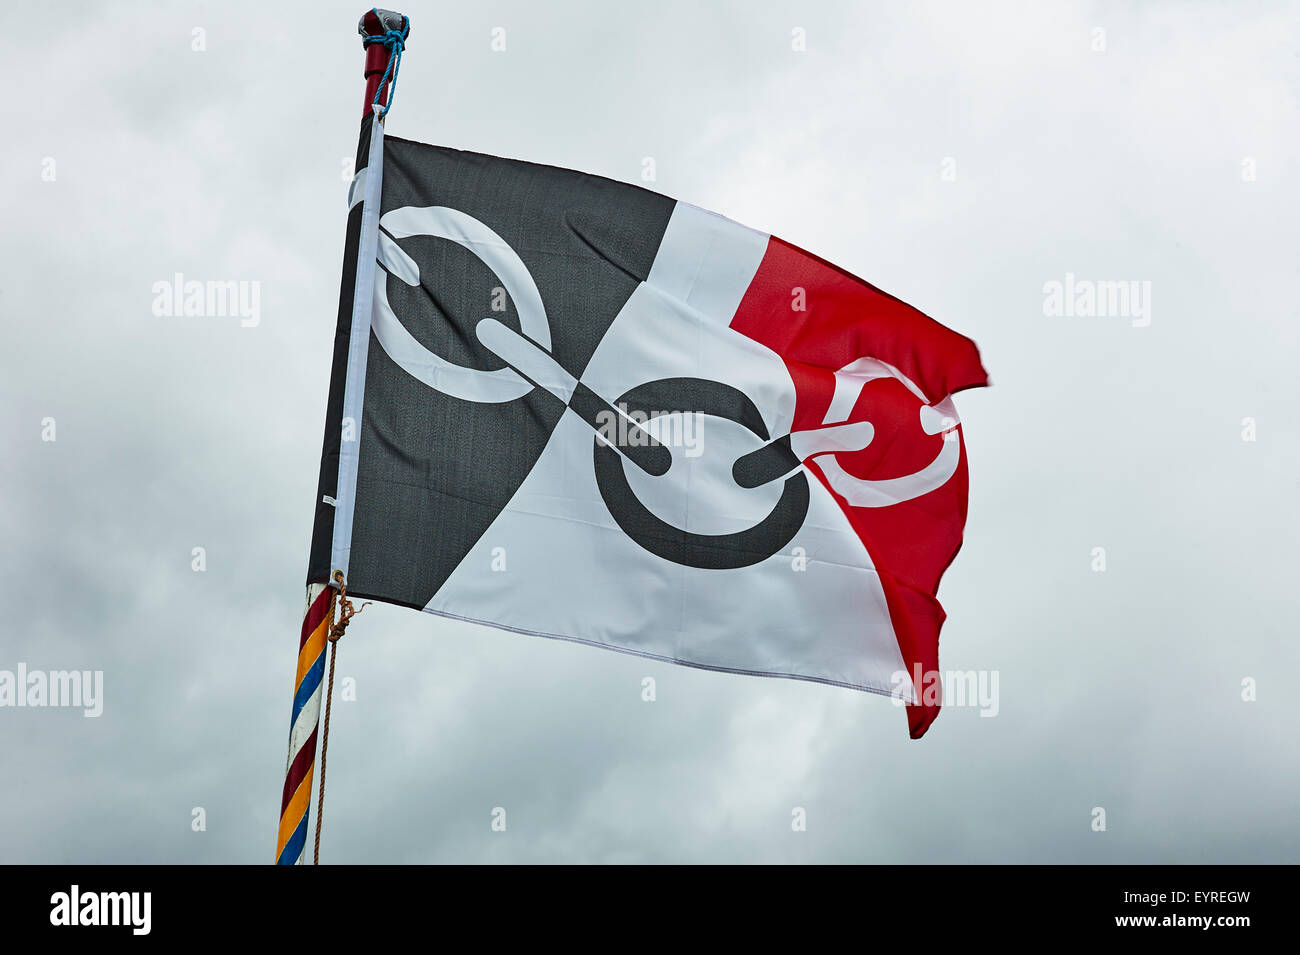 Flag of the Black Country - Stock Image